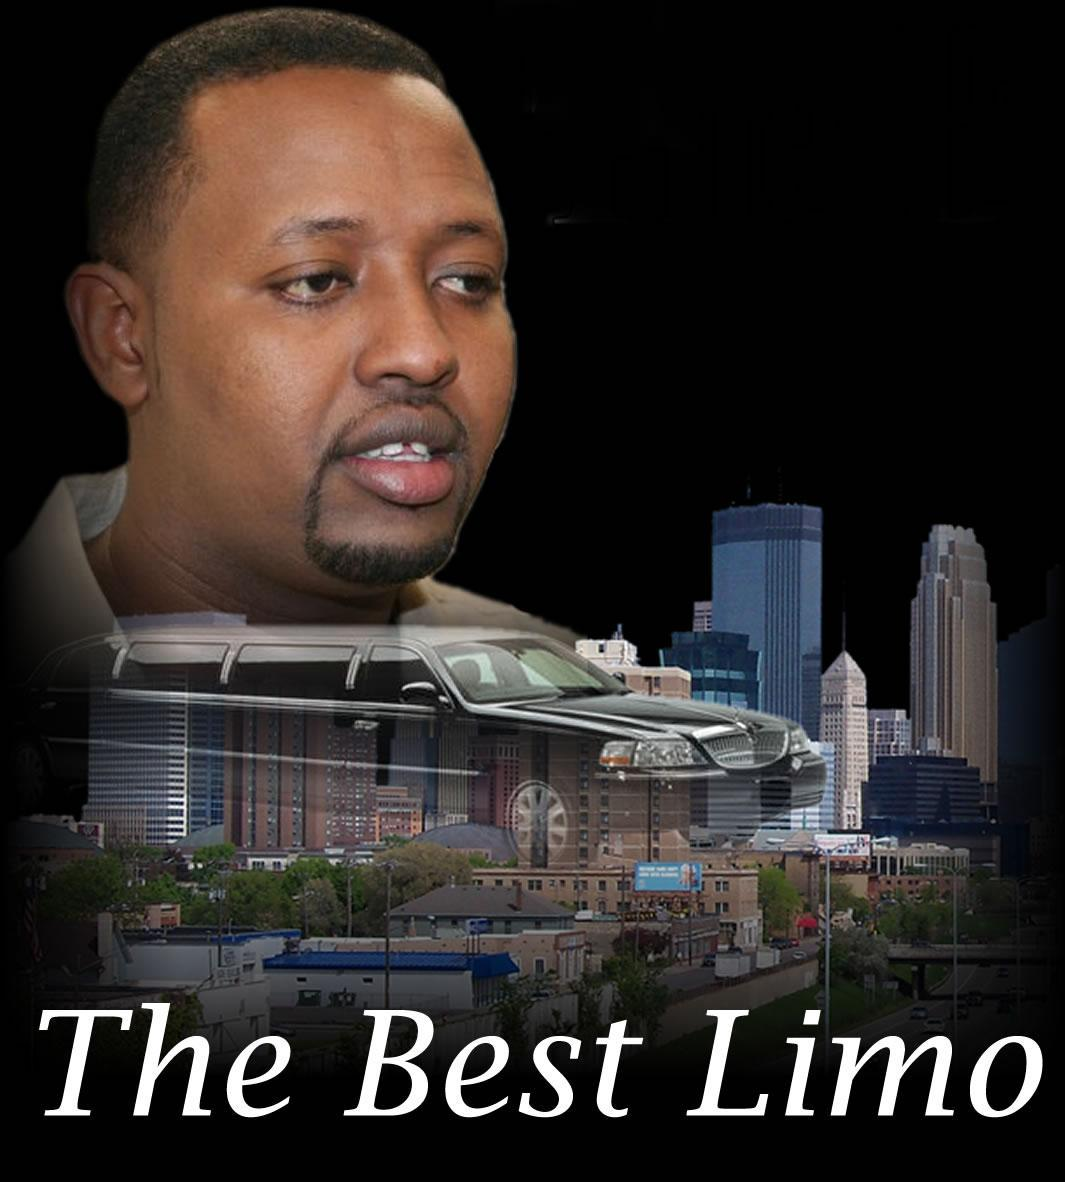 The Best Limo poster